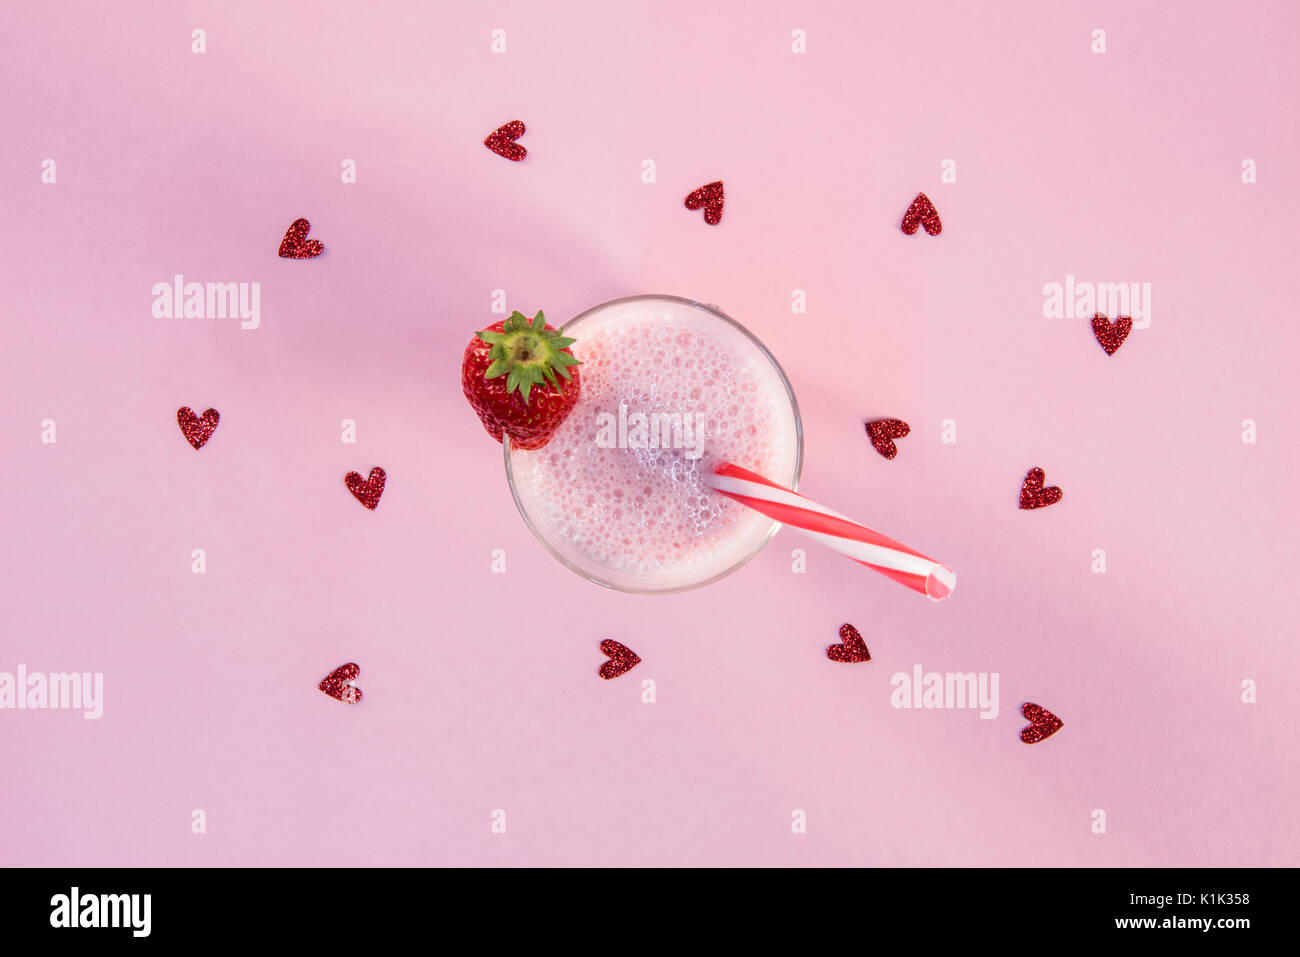 strawberry milkshake in glass with drinking straw and heart symbols on pink surface - Stock Image